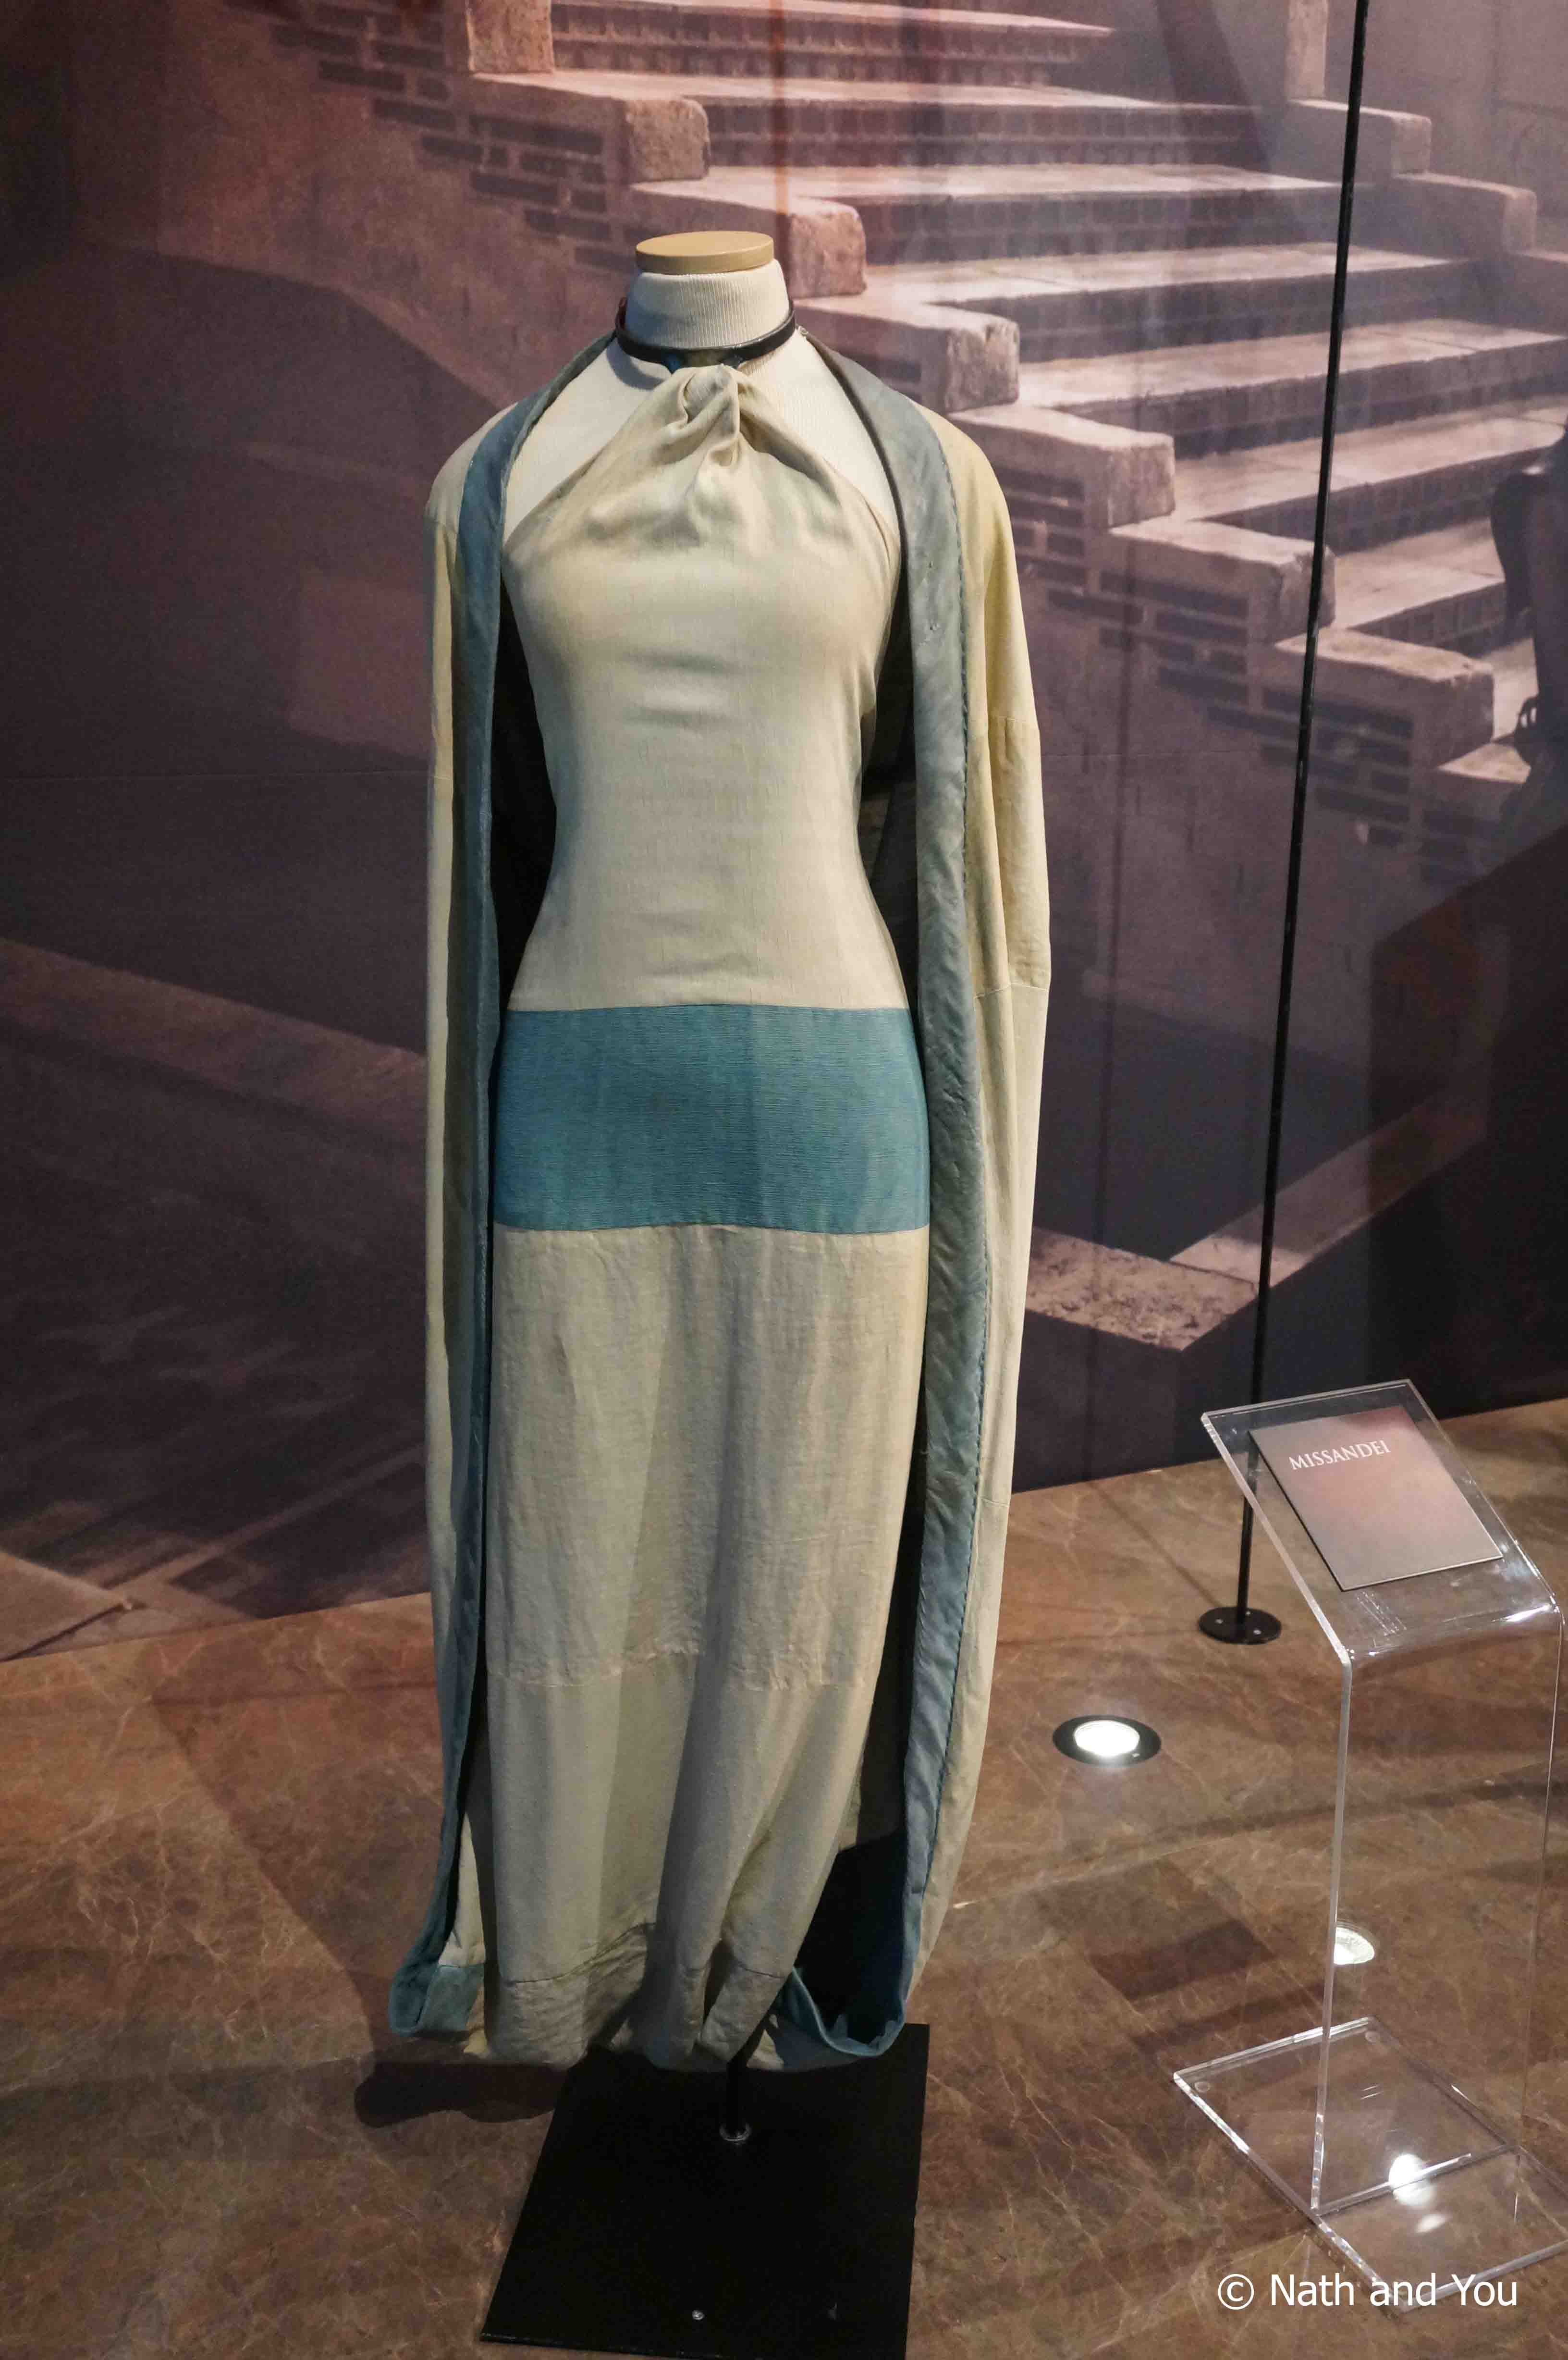 Missandei-Exposition-Game-of-Thrones-Nath-and-you